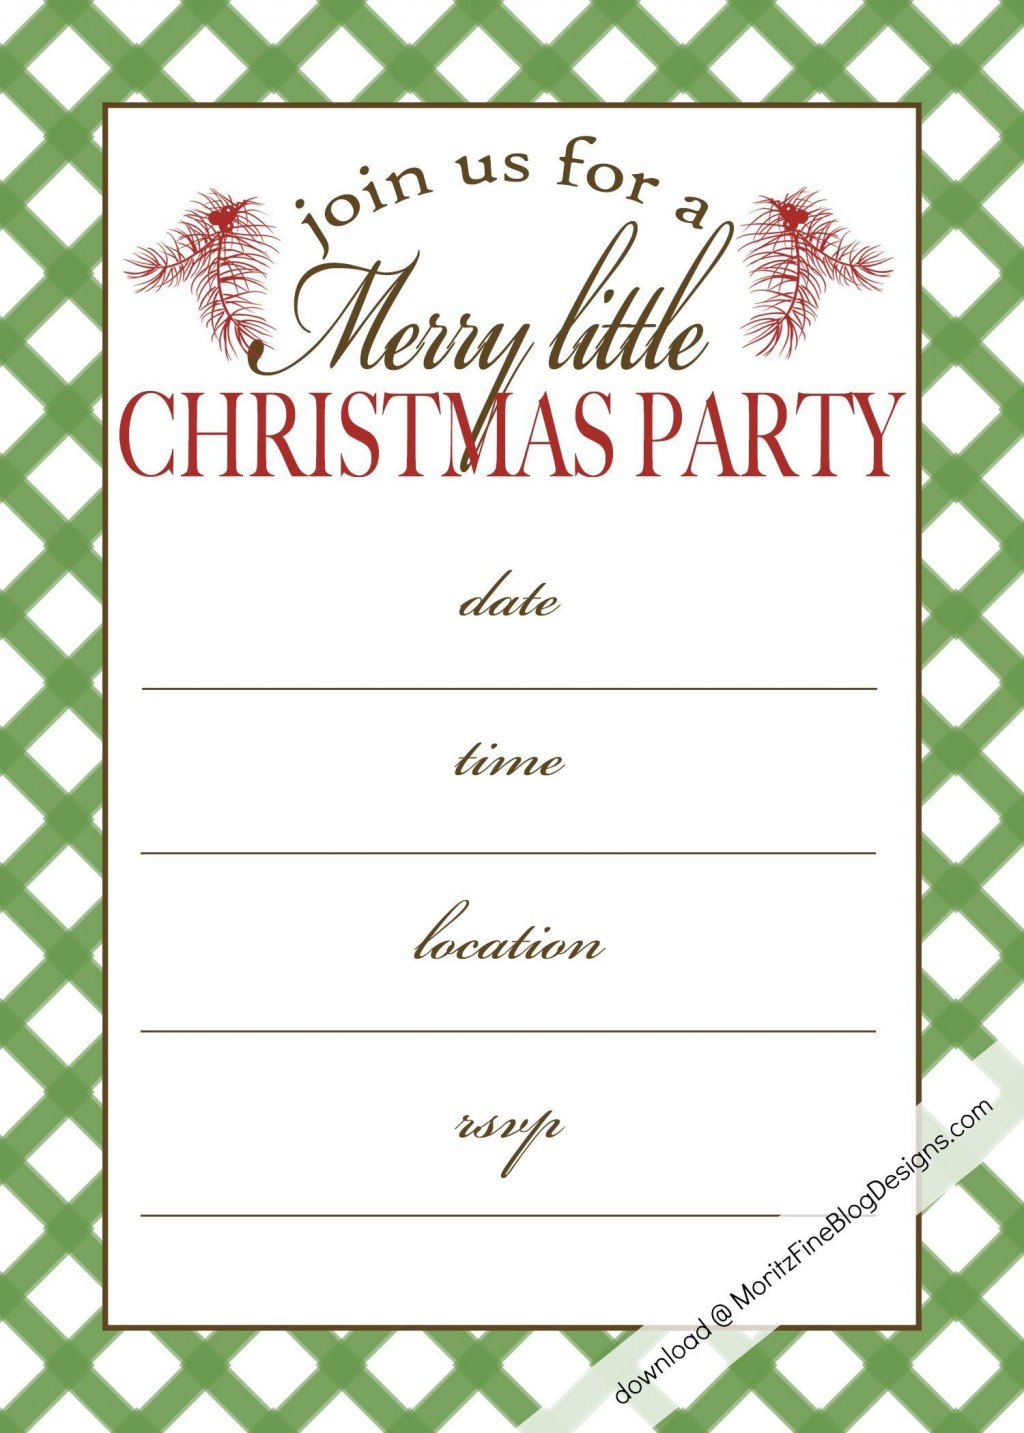 002 Awesome Xma Party Invite Template Free Photo  Holiday Invitation Word Printable Office Christma DownloadLarge